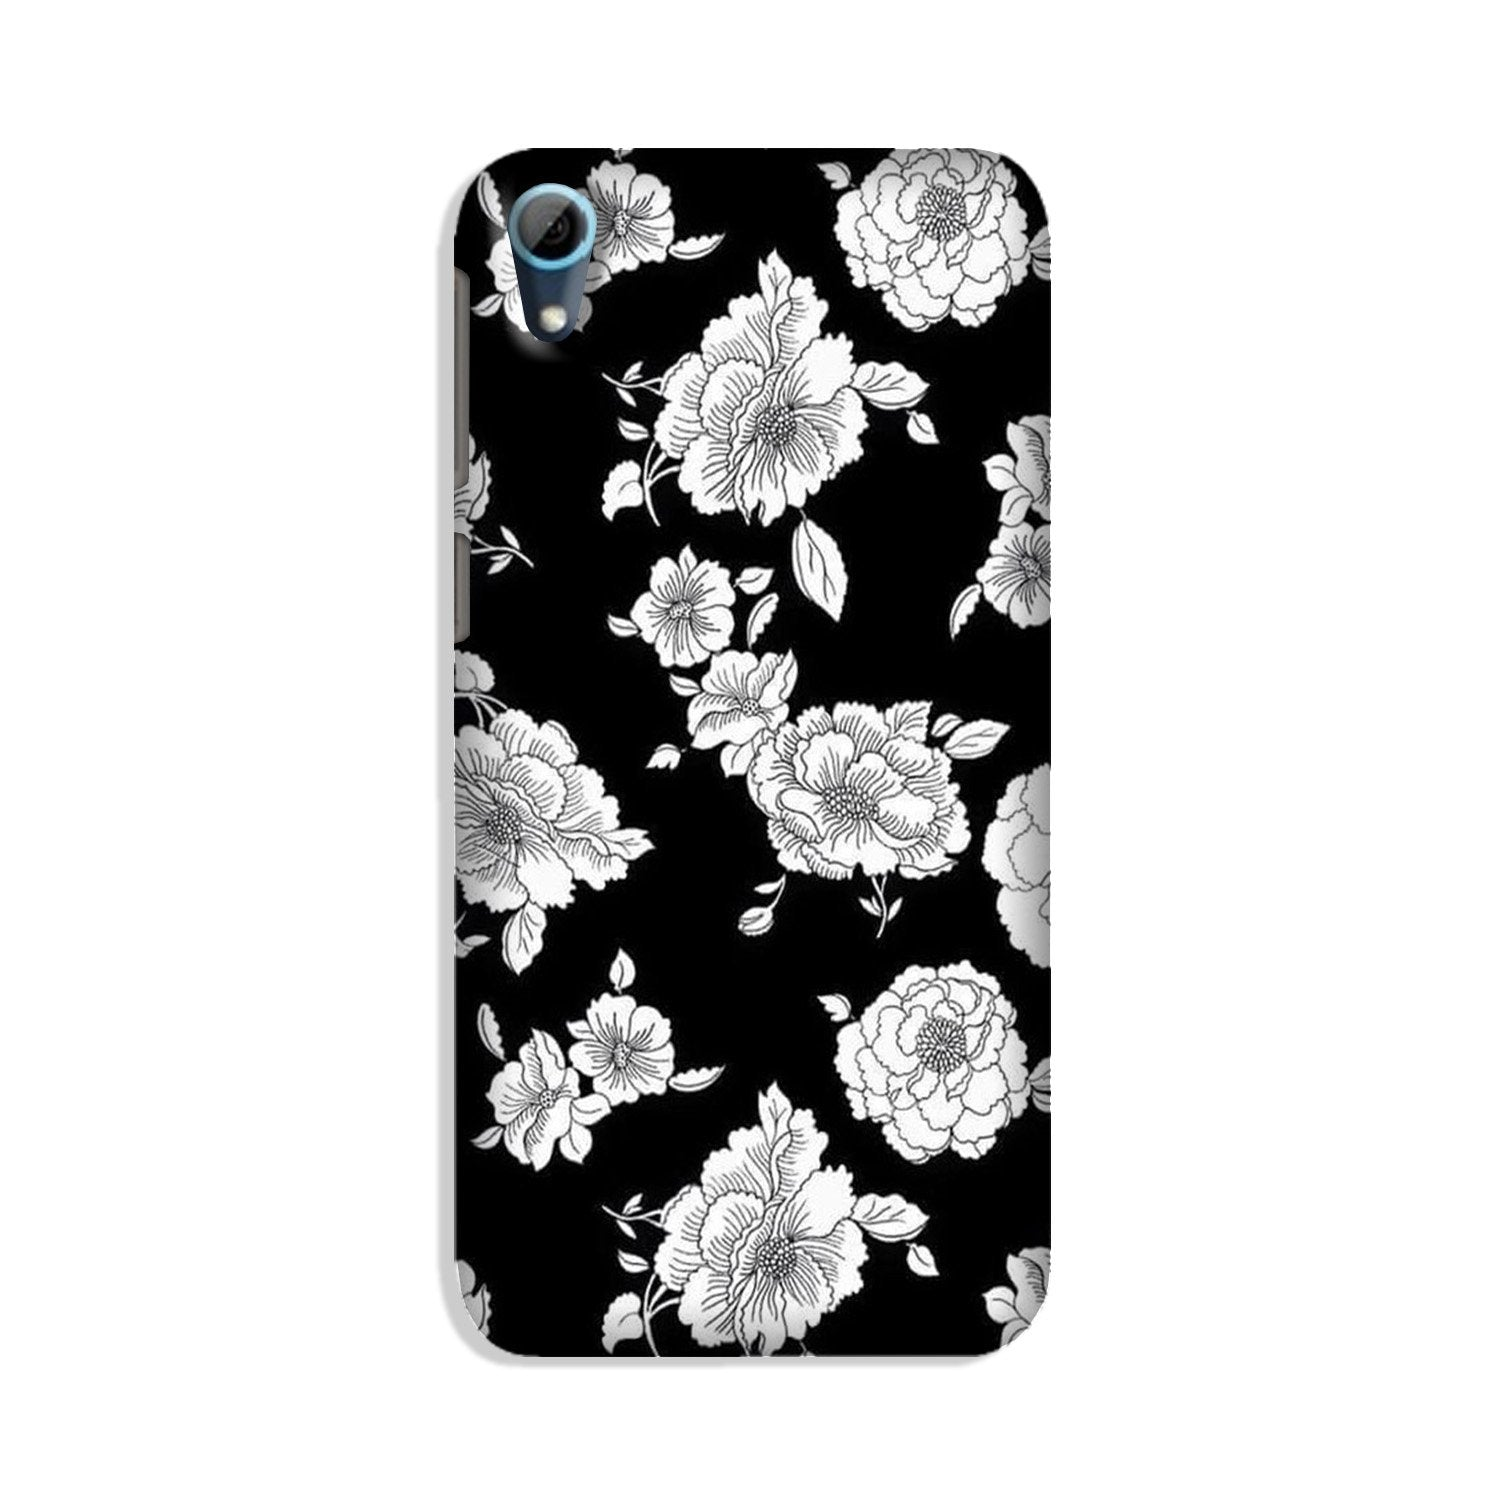 White flowers Black Background Case for HTC Desire 826